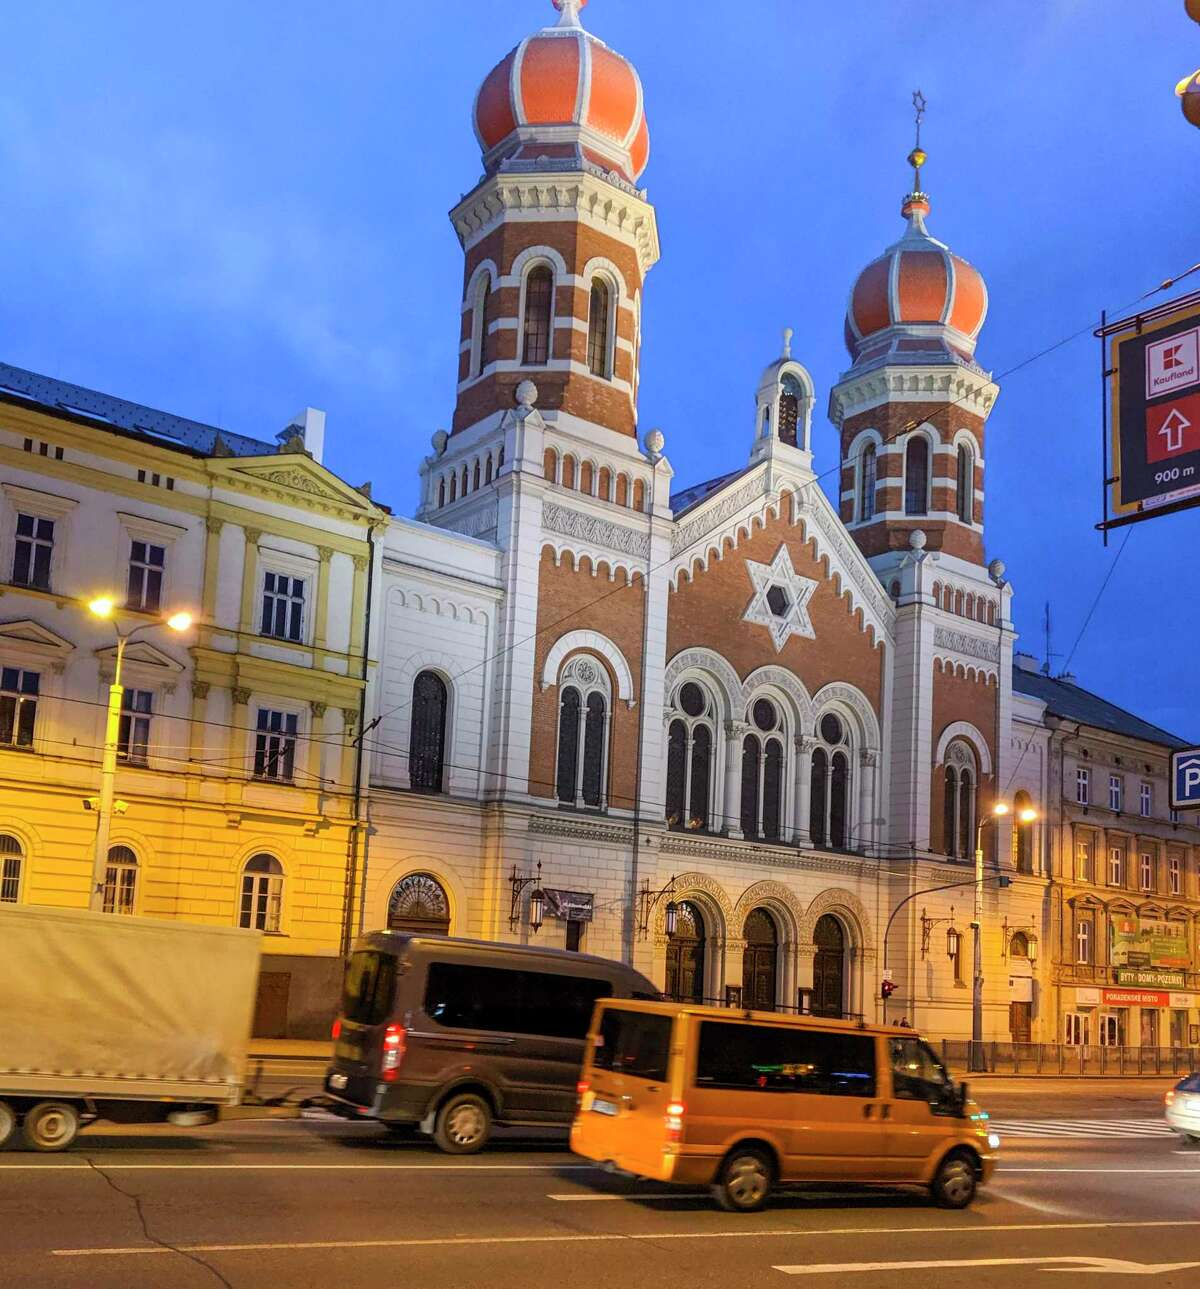 The Great Synagogue of Pilsen, in the Czech Republic, is lit up in the evening light. The synagogue, one of the largest in Europe, was built in 1893 in the Moorish-Romanesque style. German snipers in World War II hid in the parapets. The city's Jewish population was decimated during the war.